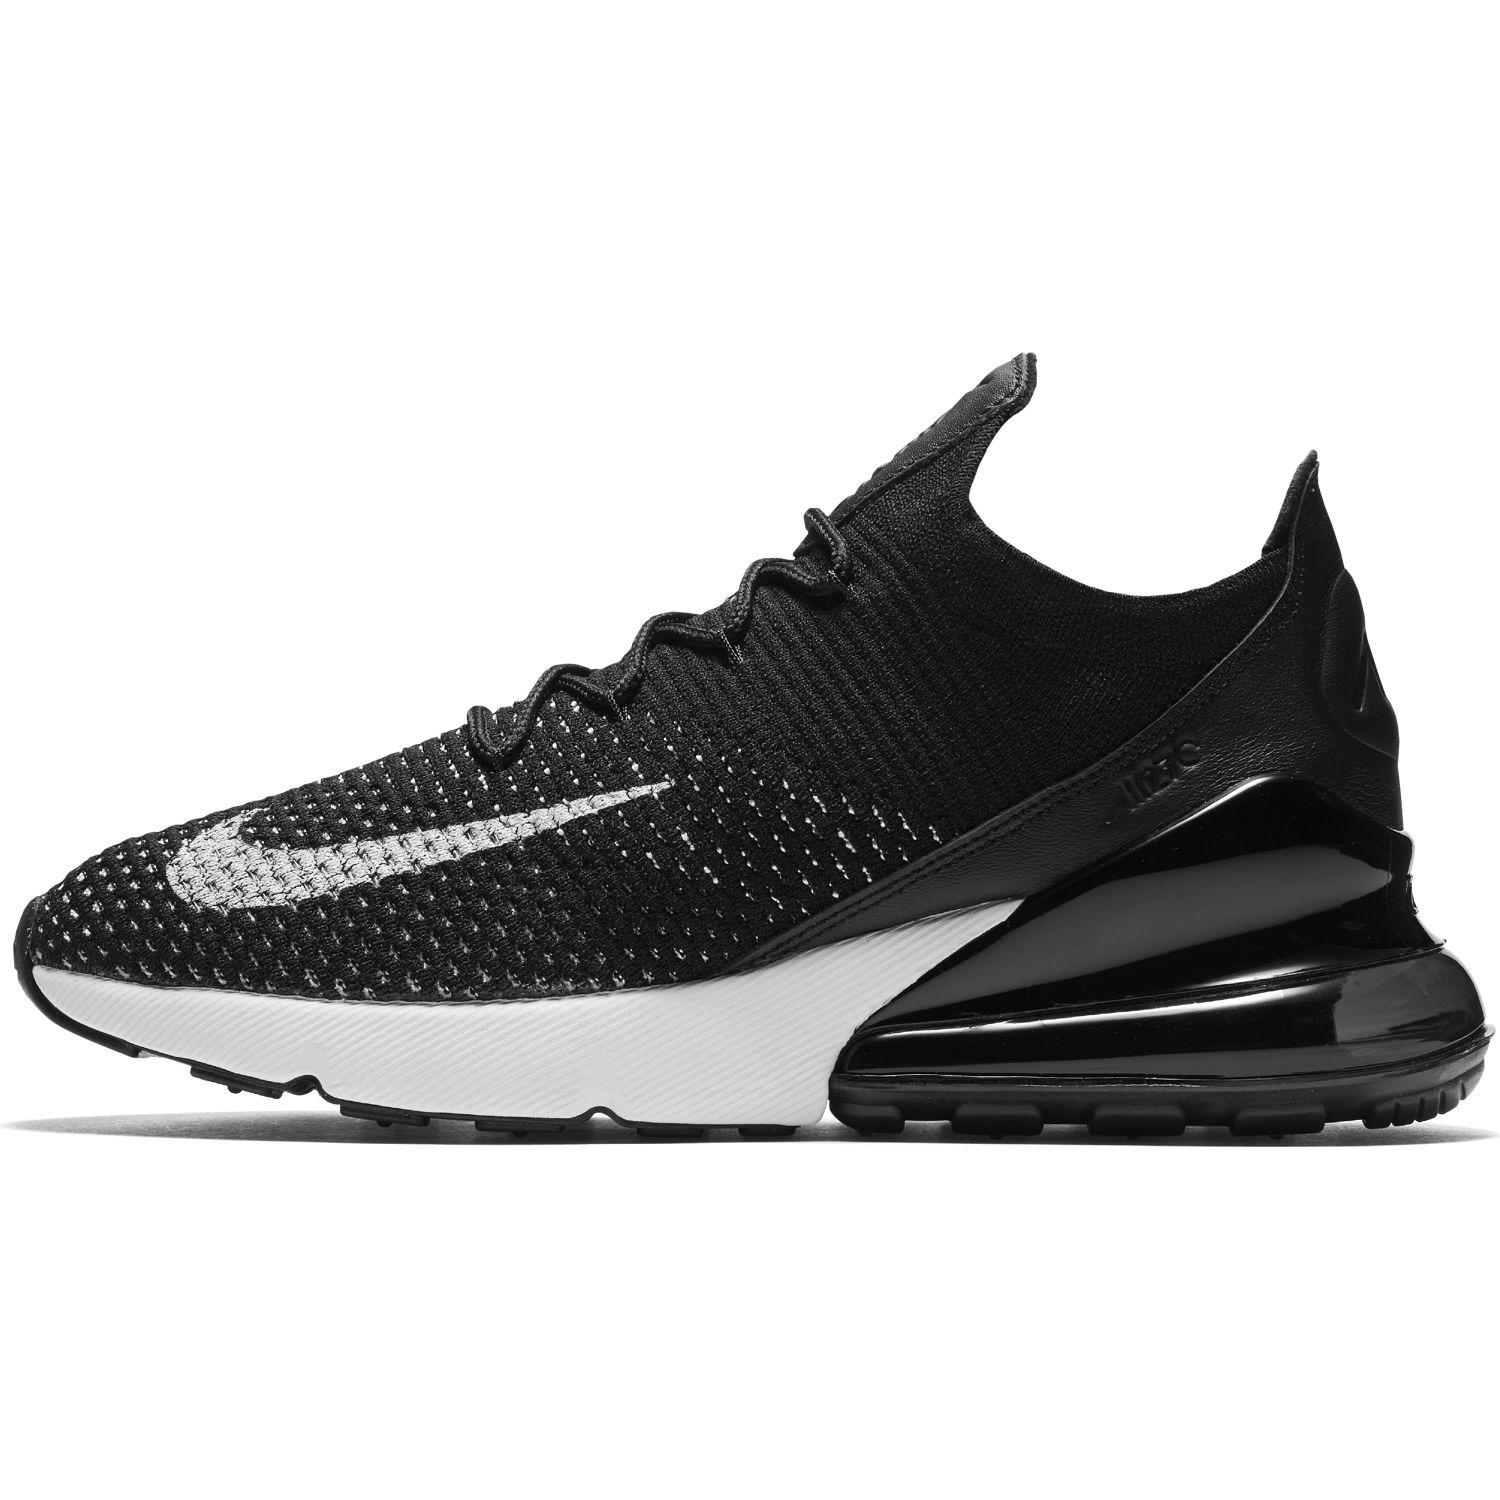 the latest 1bda1 c99e1 promo code buty damskie nike air max 270 flyknit black white ah6803 001  f5c7a 790b0